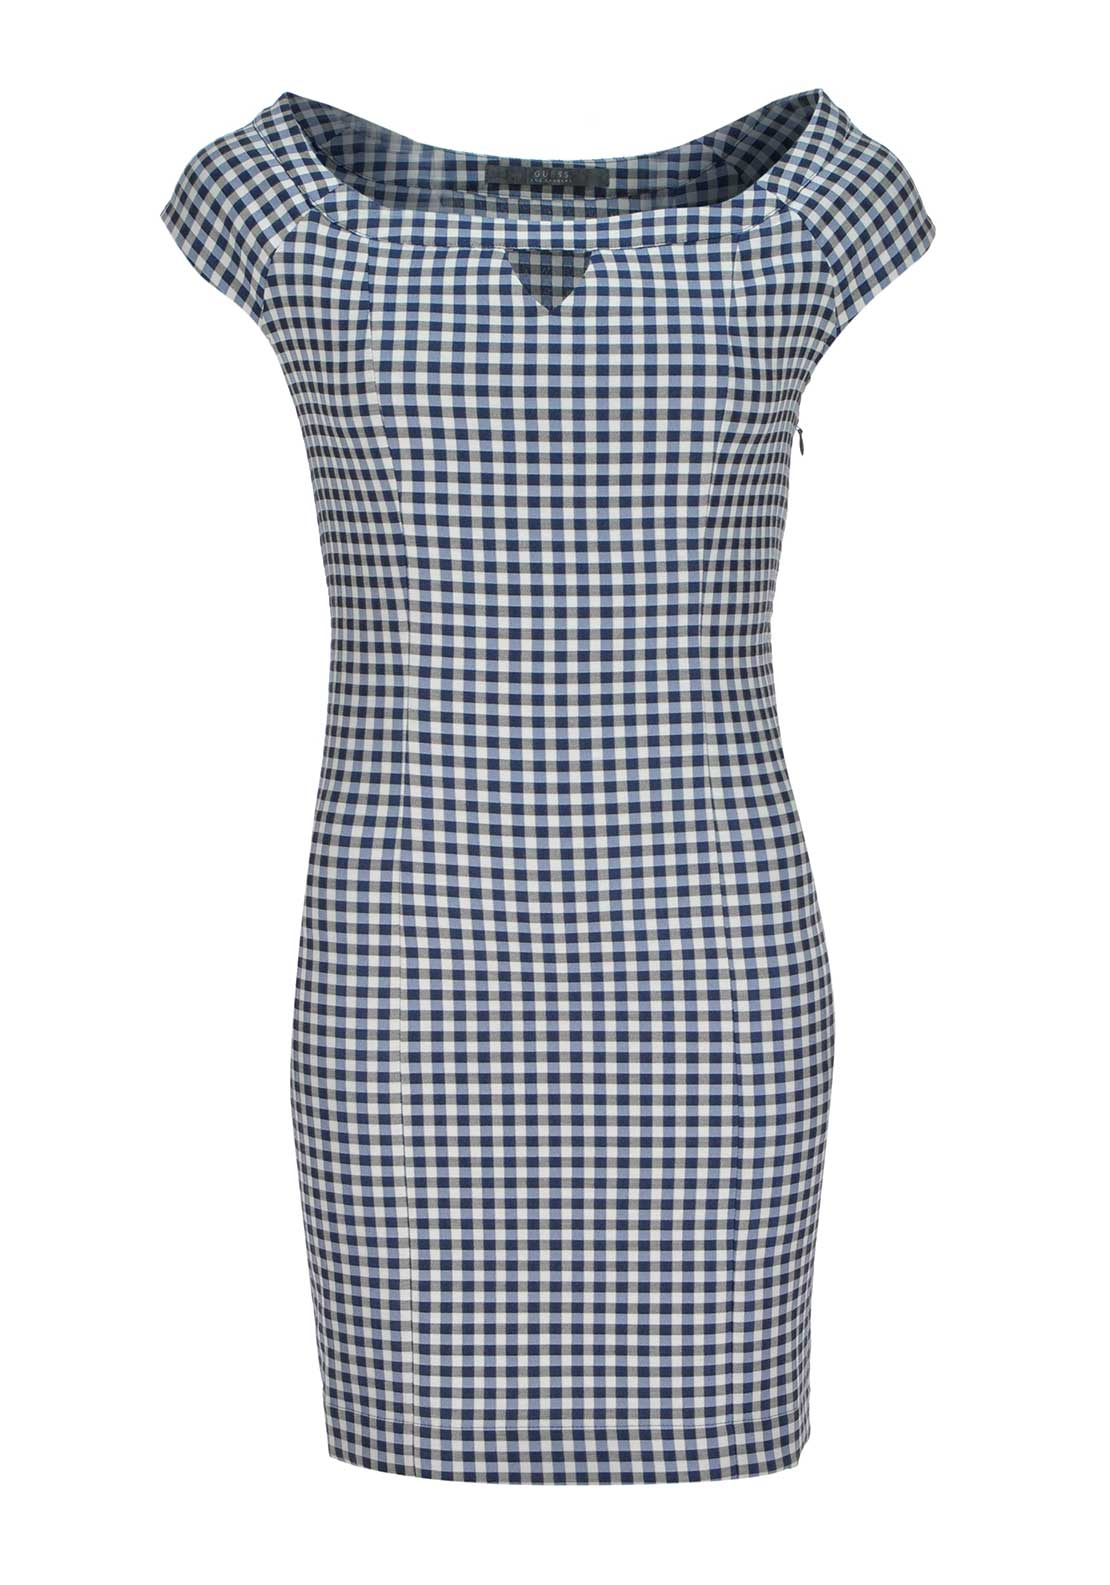 Guess Womens Shelly Bardot Neck Chequered Bodycon Dress, Blue